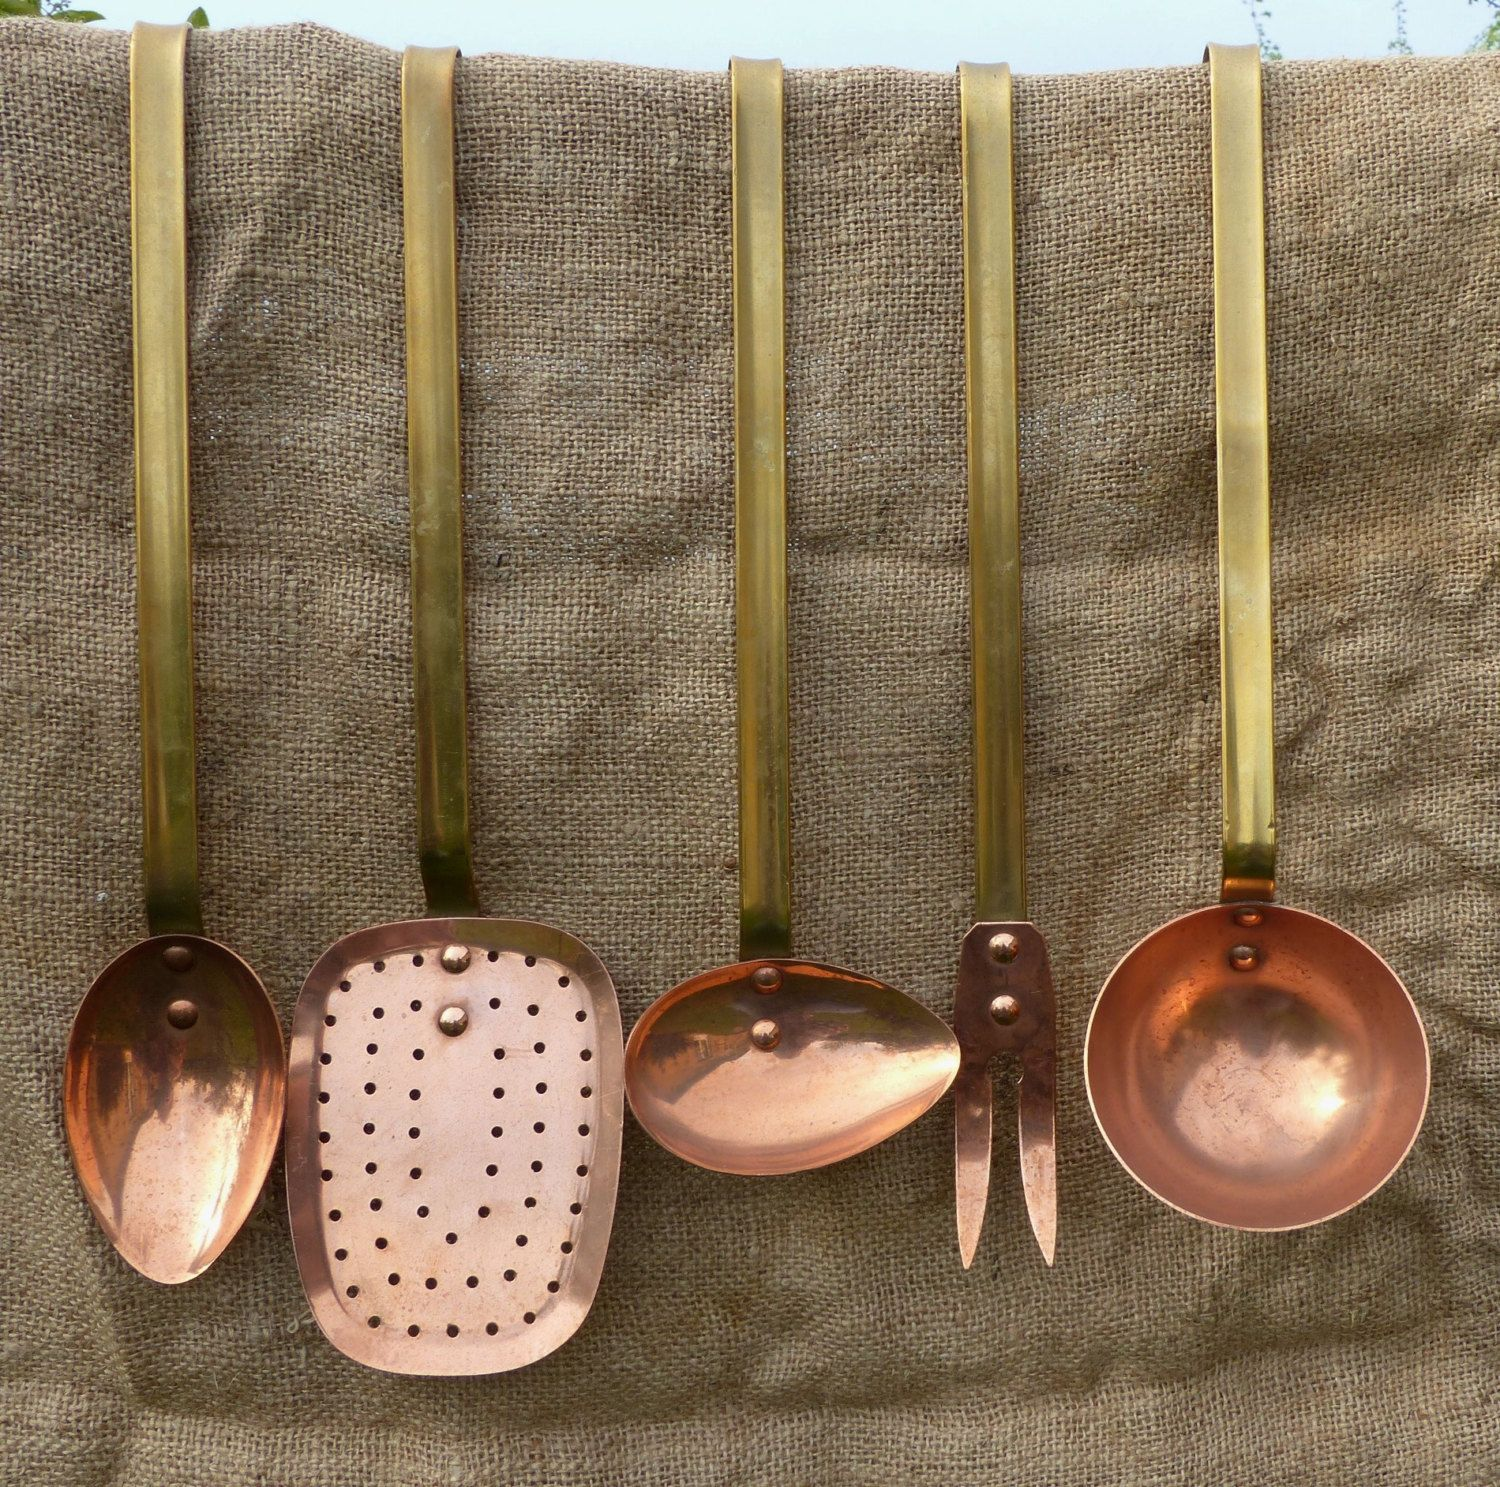 French Vintage Copper and Brass Kitchen Utensils. Set of 5. by JadisInTimesPast on Etsy